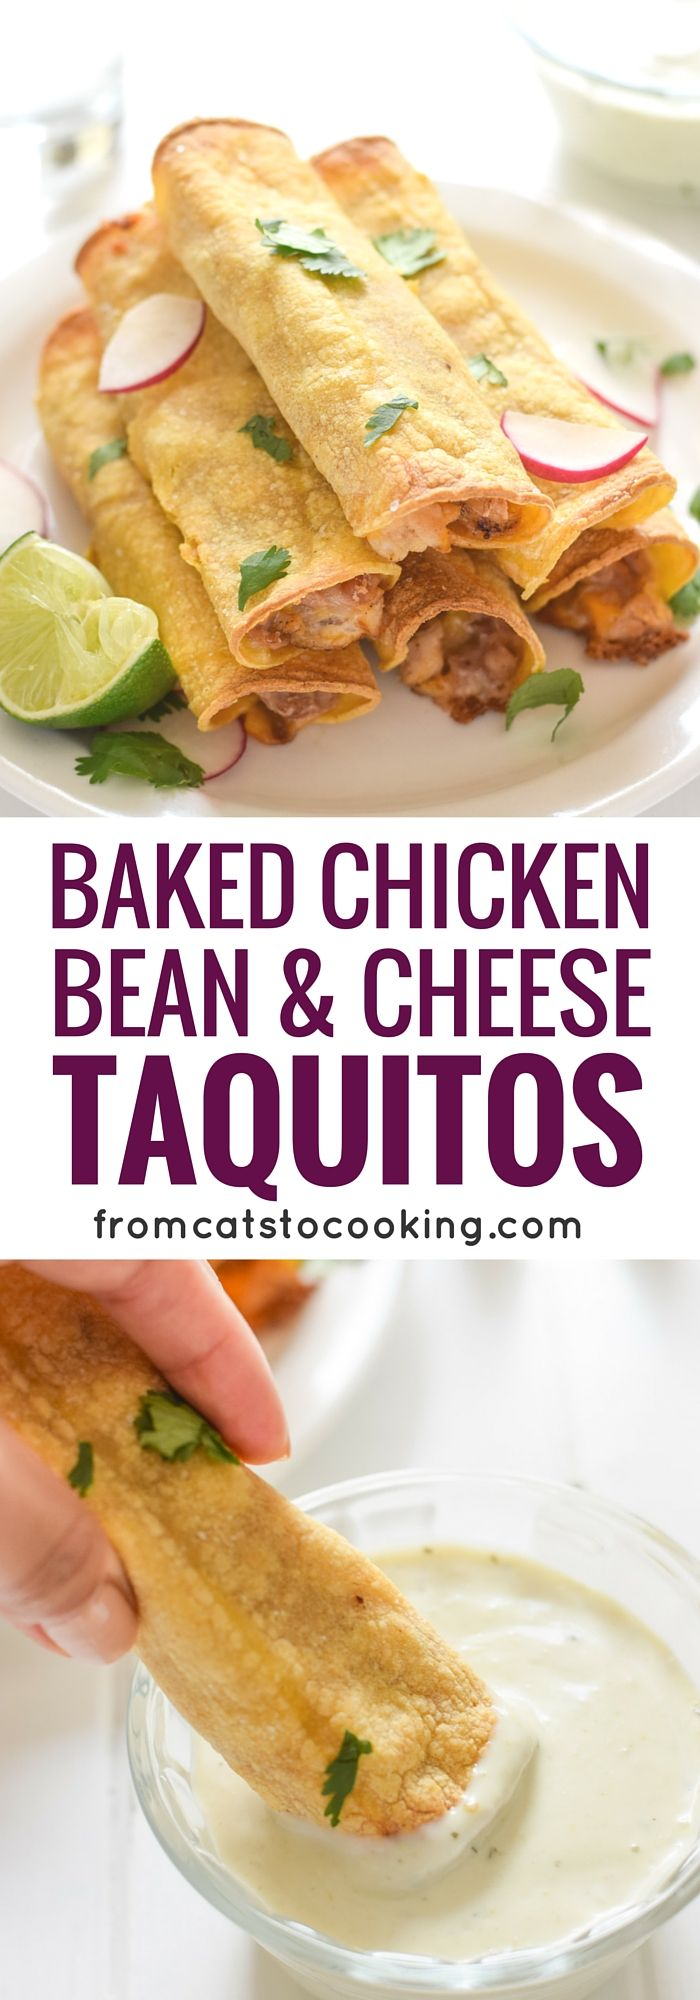 If you're looking for an easy, freezer-friendly meal, look no further than these Baked Chicken, Bean